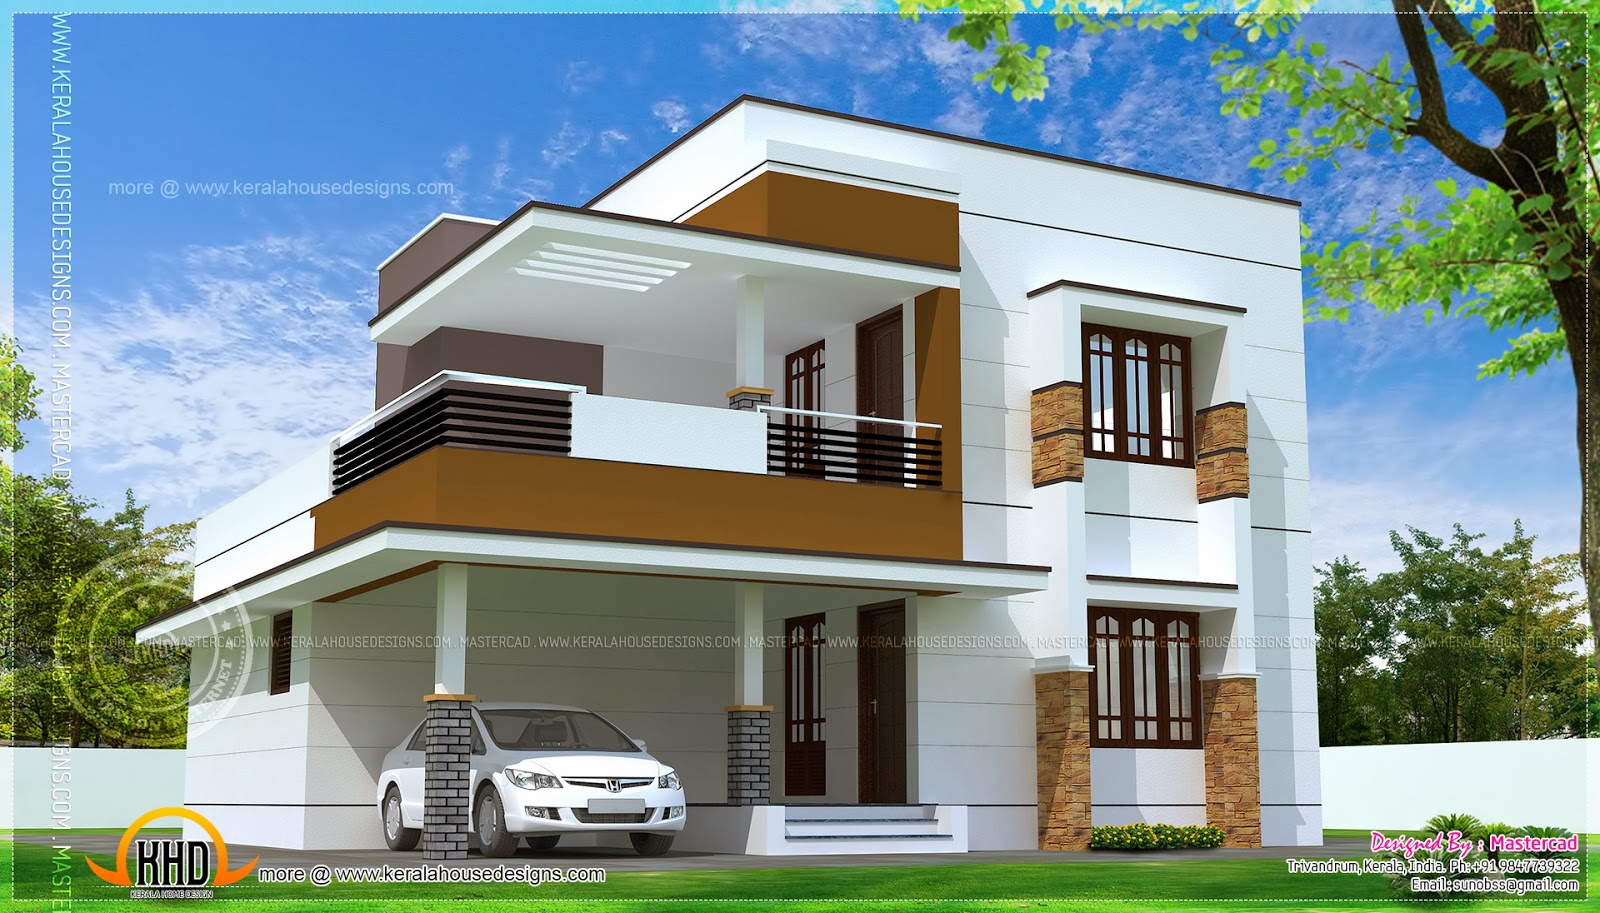 November 2013 kerala home design and floor plans Simple house designs and plans